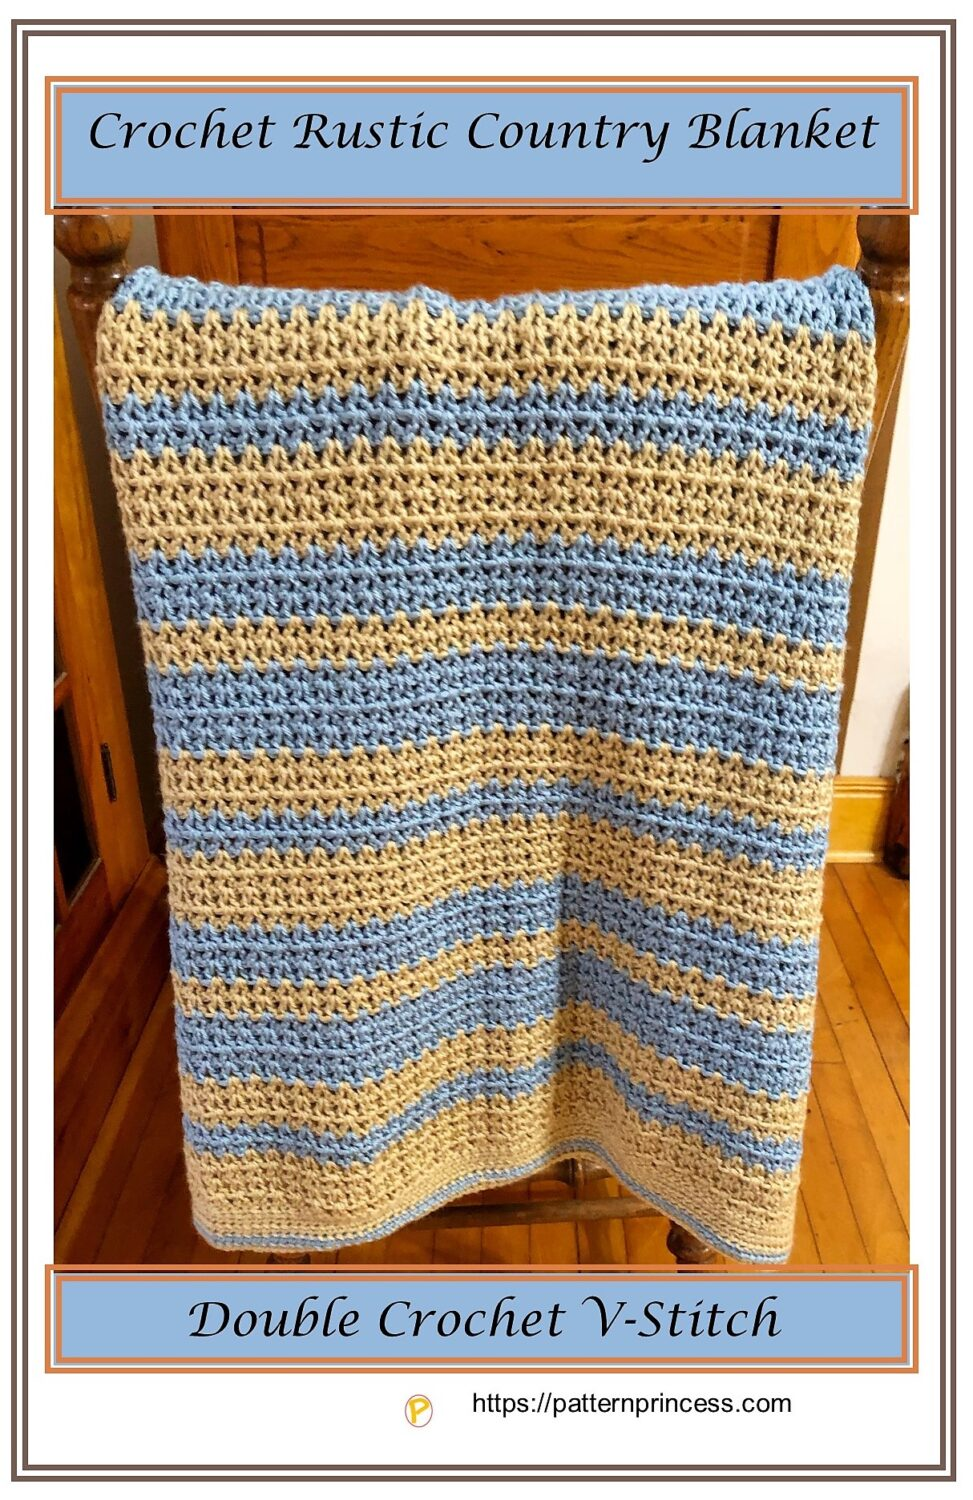 Crochet Rustic Country Blanket Pattern